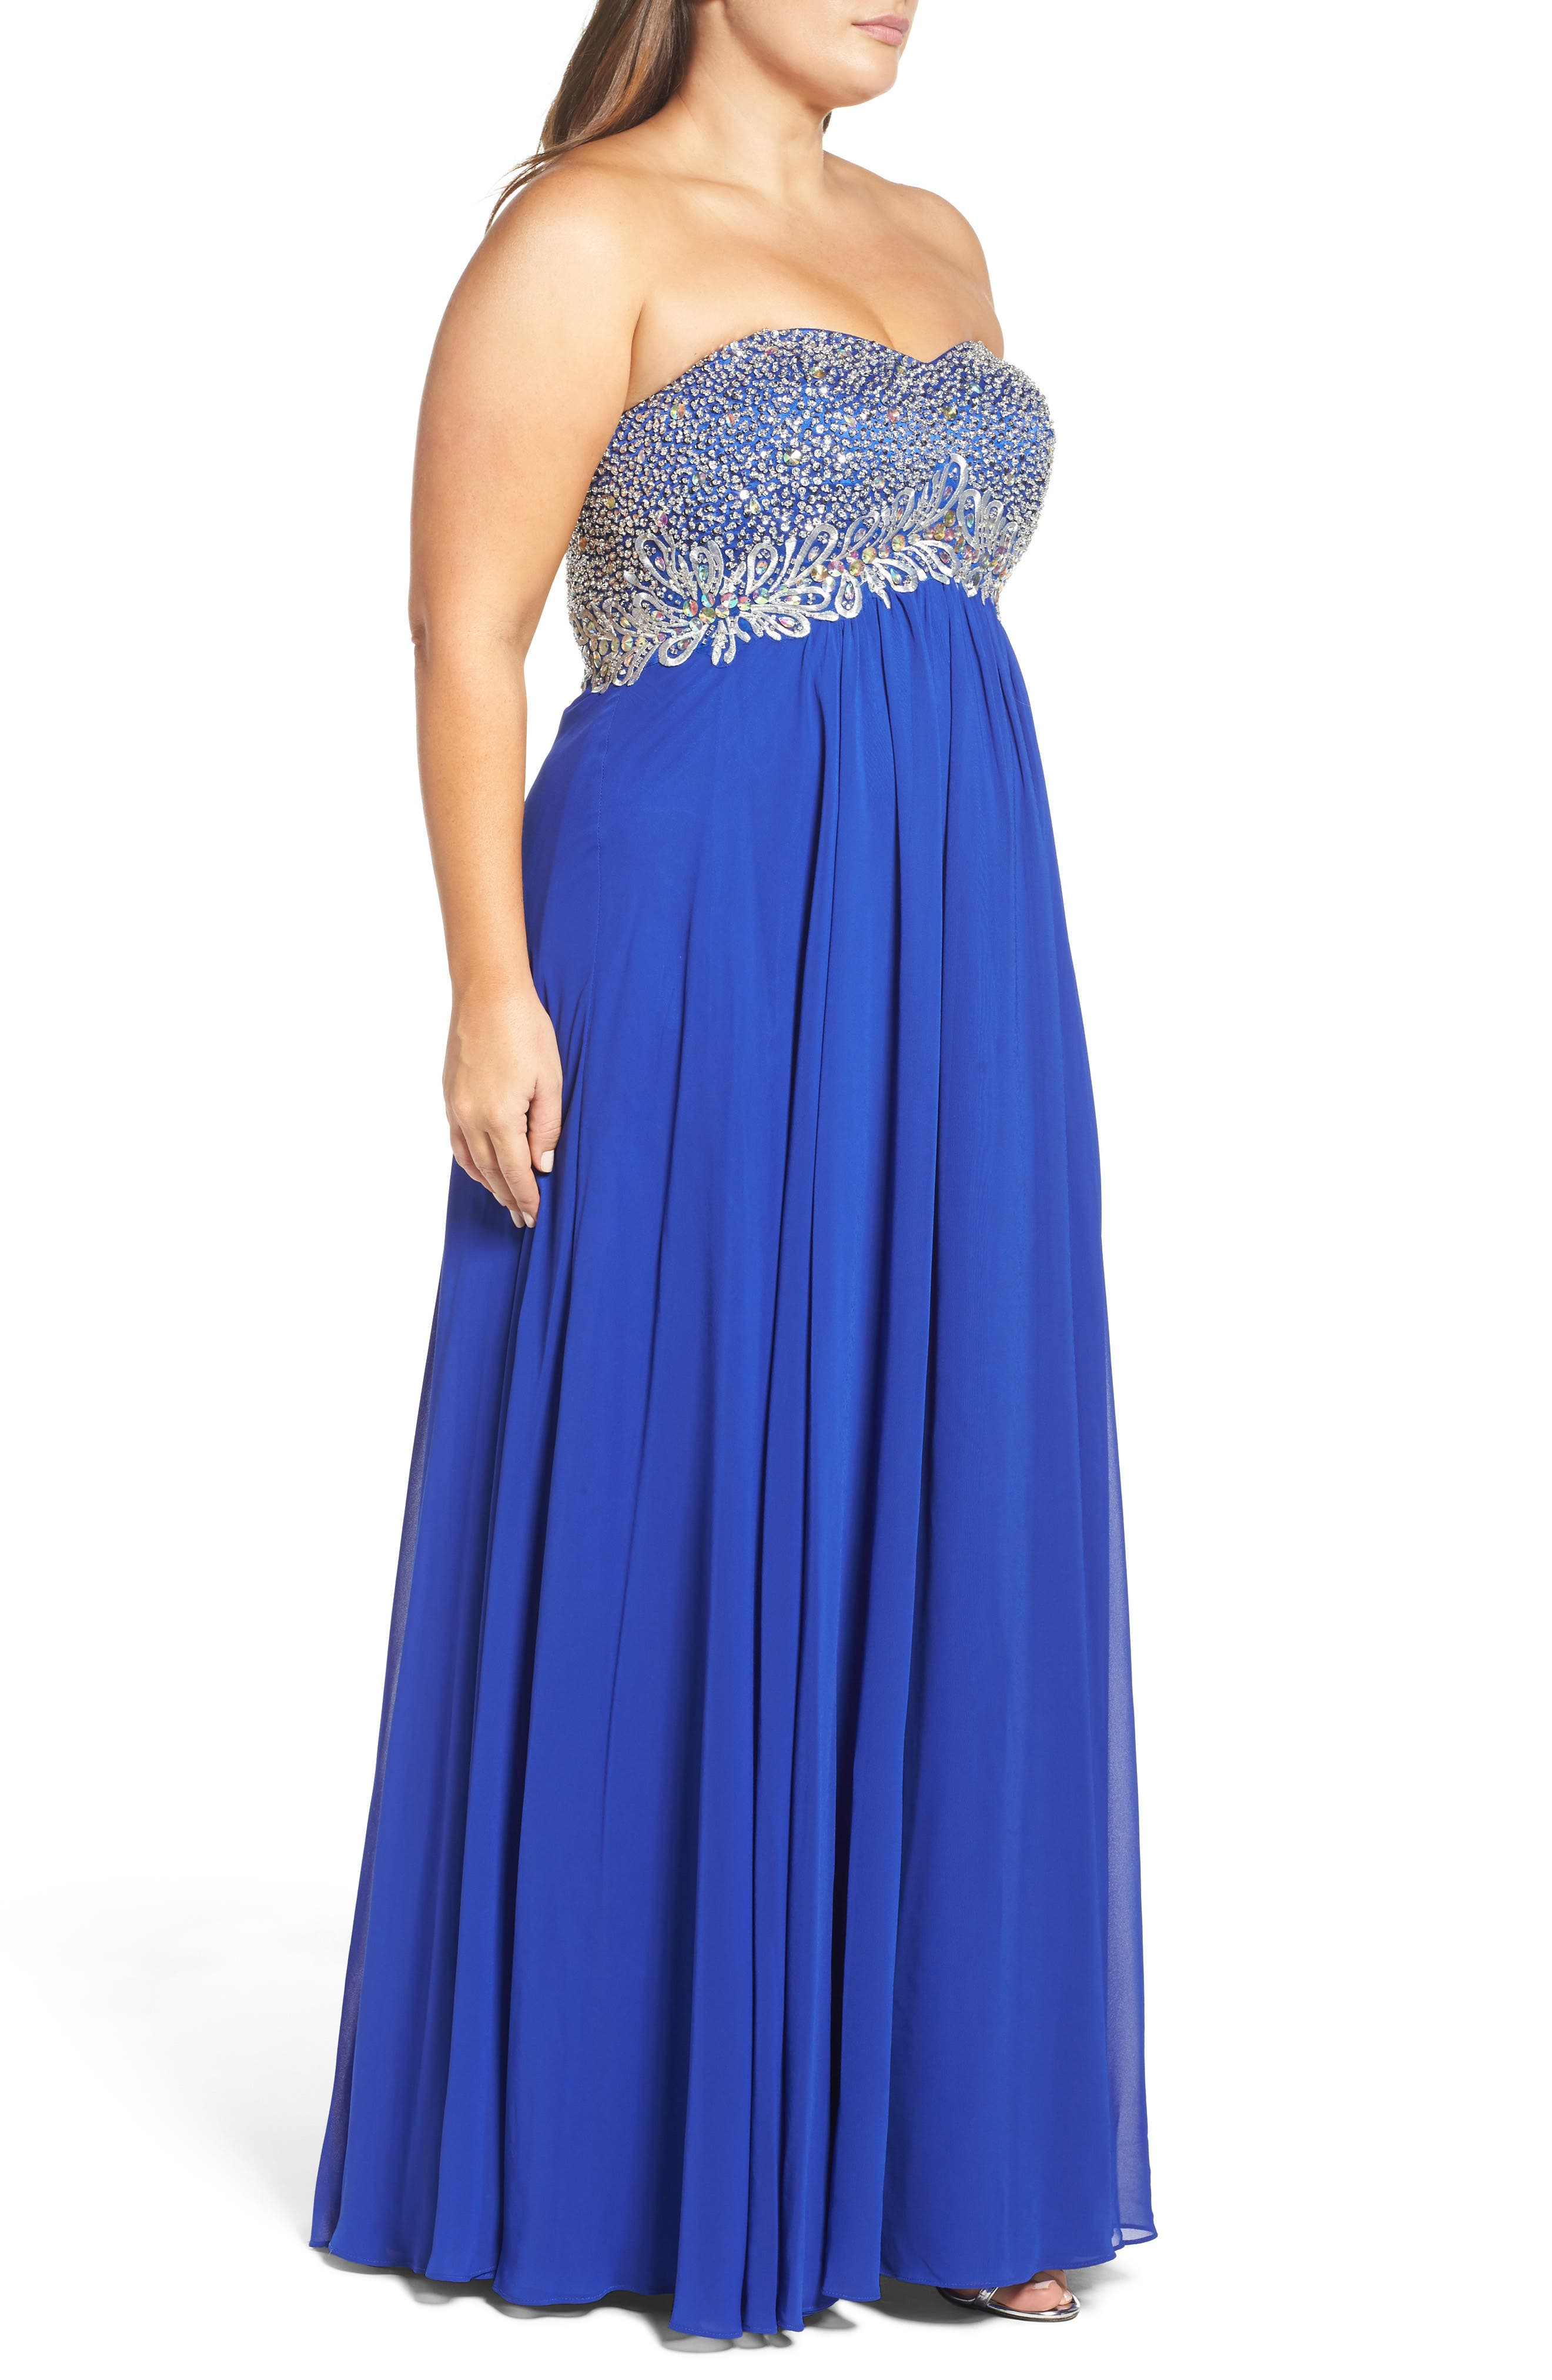 Embellished Strapless Gown,                             Alternate thumbnail 3, color,                             432